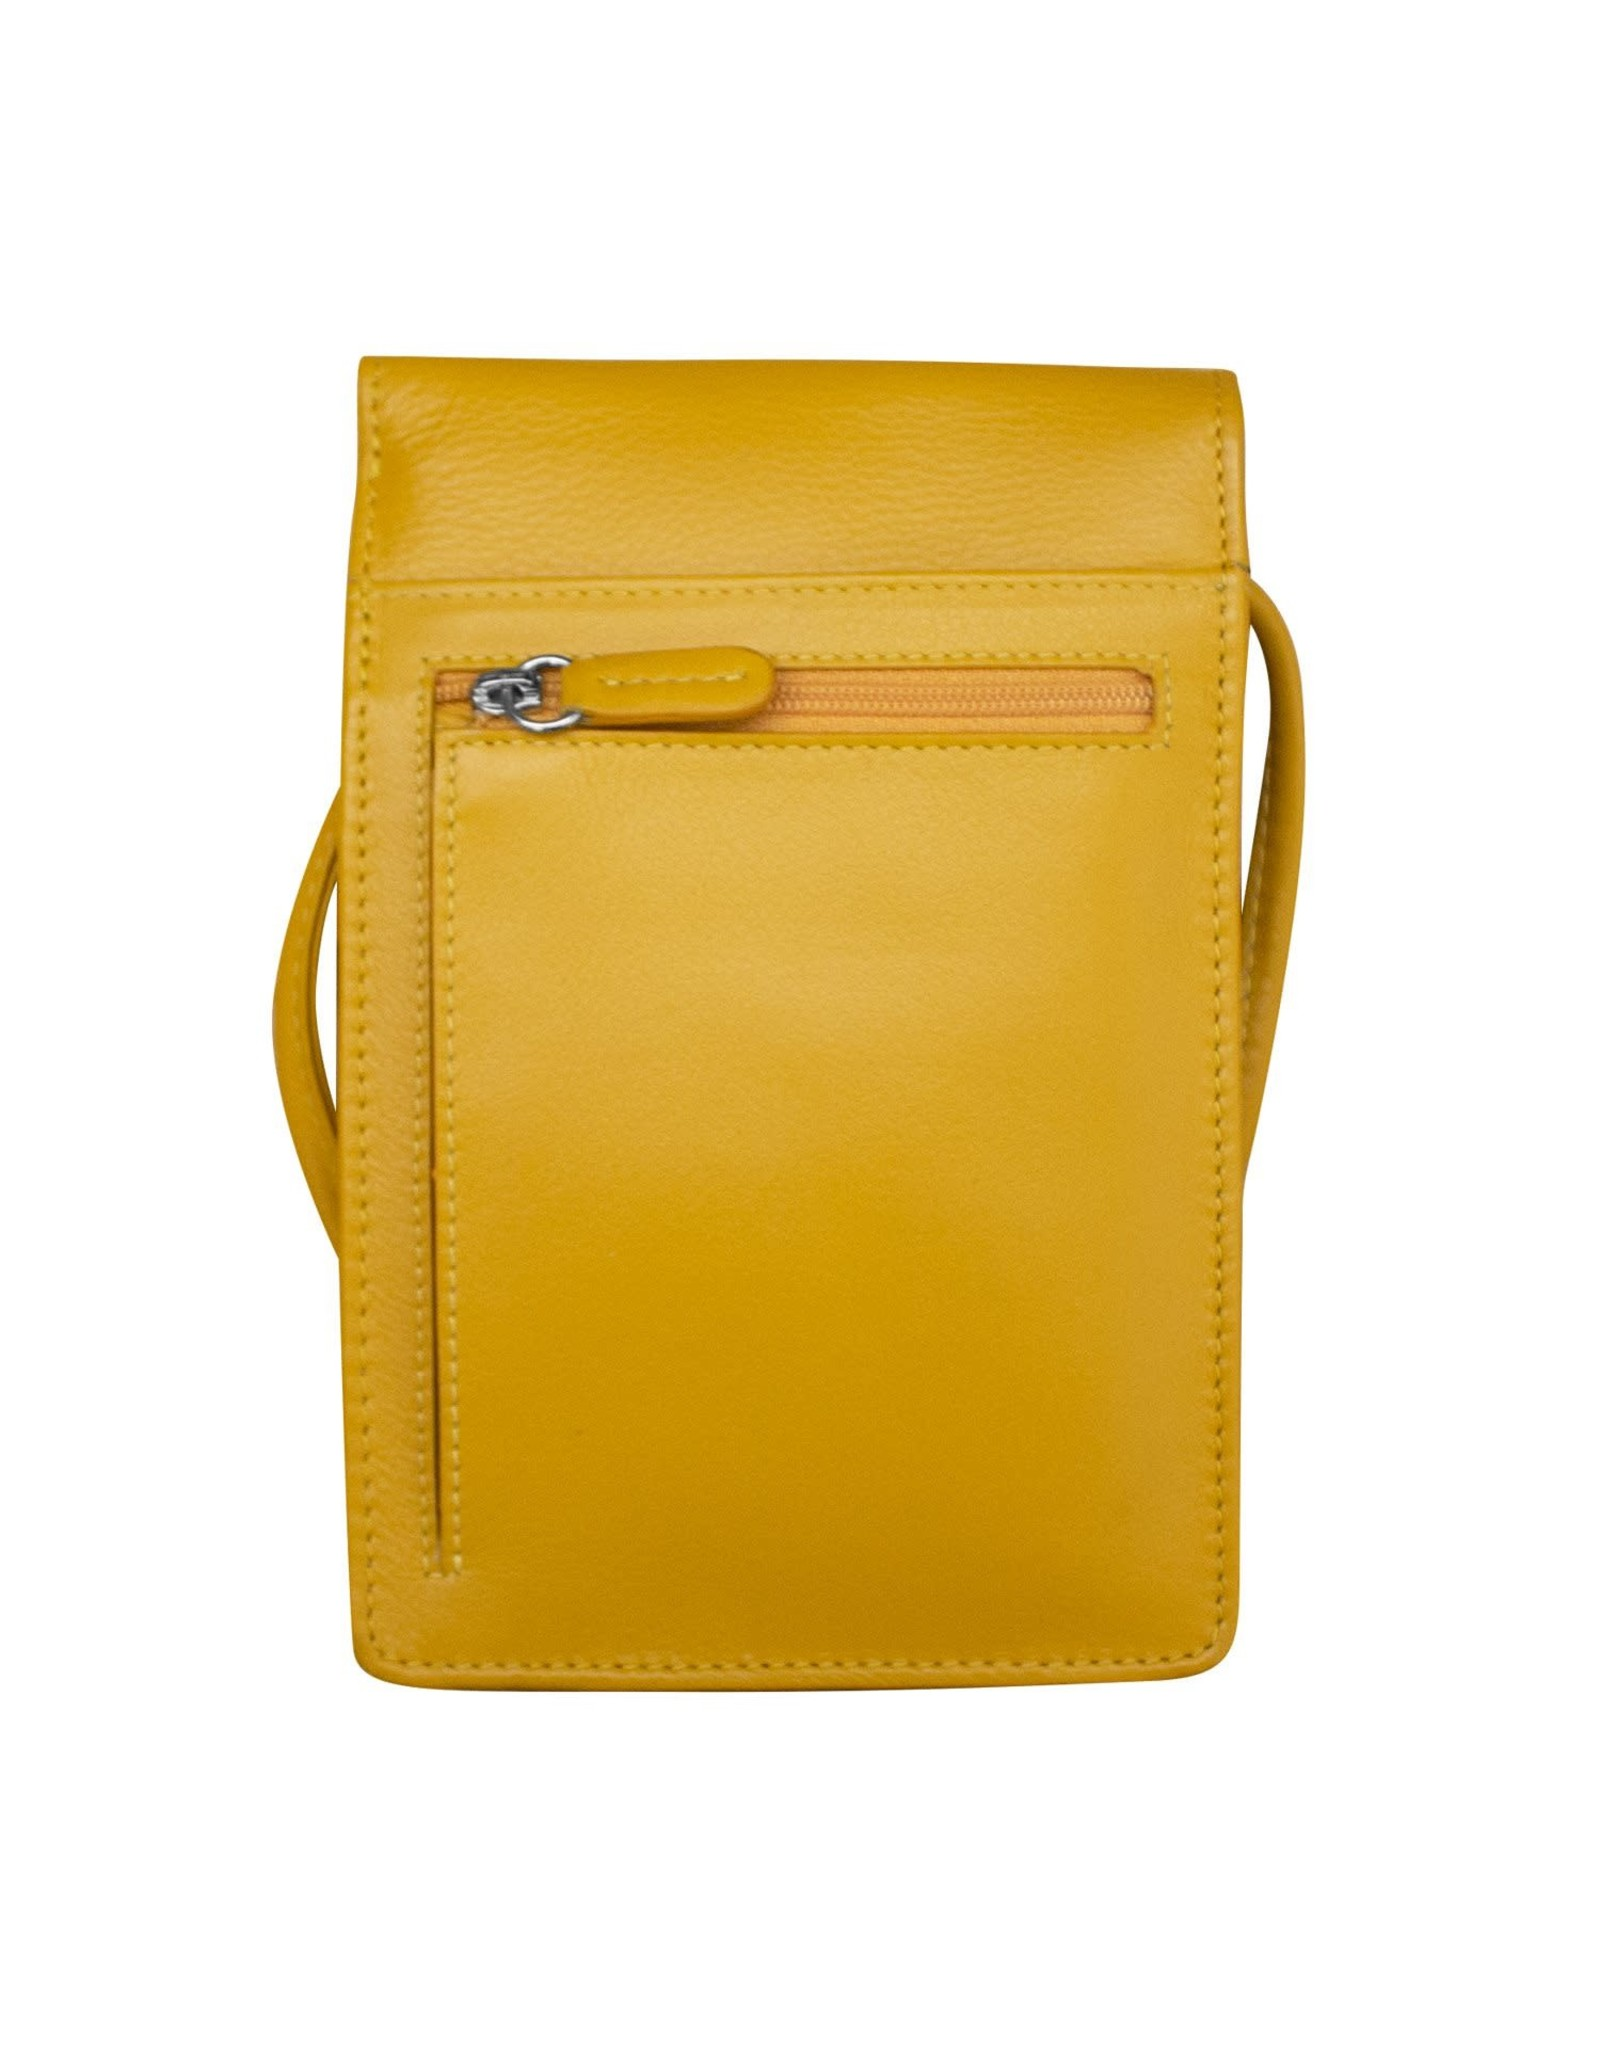 Leather Handbags and Accessories 6827 Yellow - Small Organizer